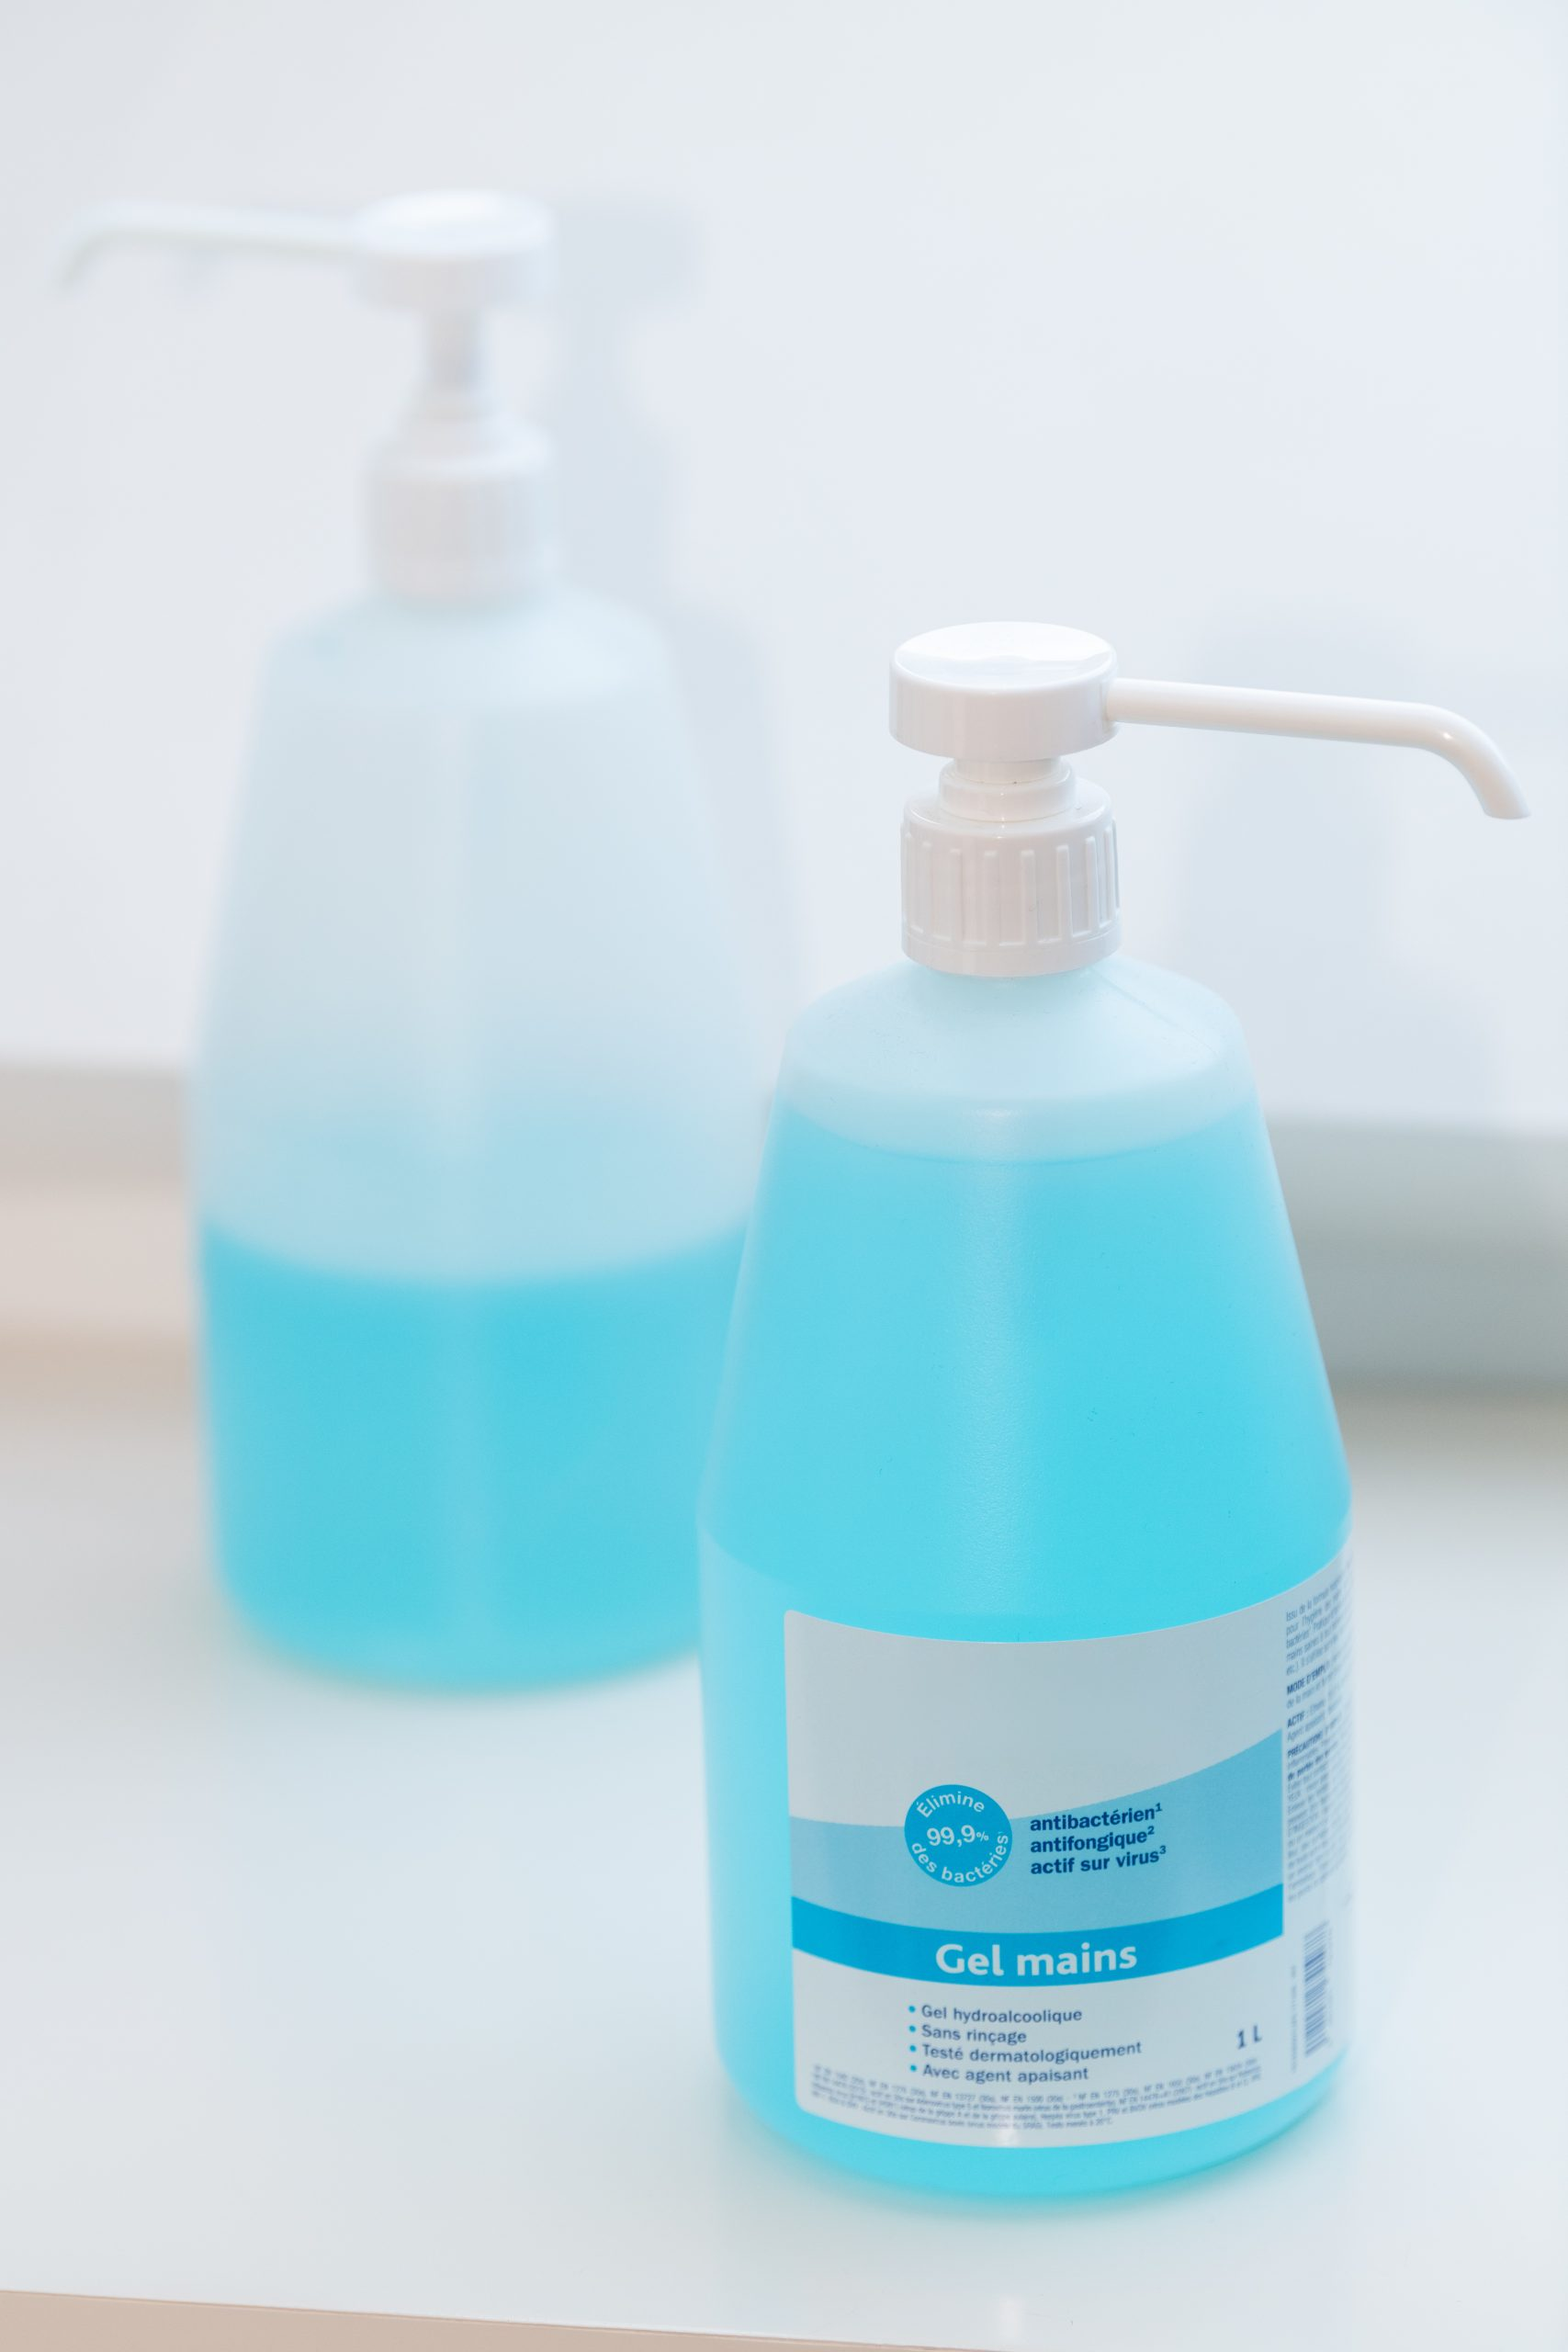 Paris, France -March, 04, 2020 : hydroalcoholic gel for hands, to prevent illness an Coronavirus